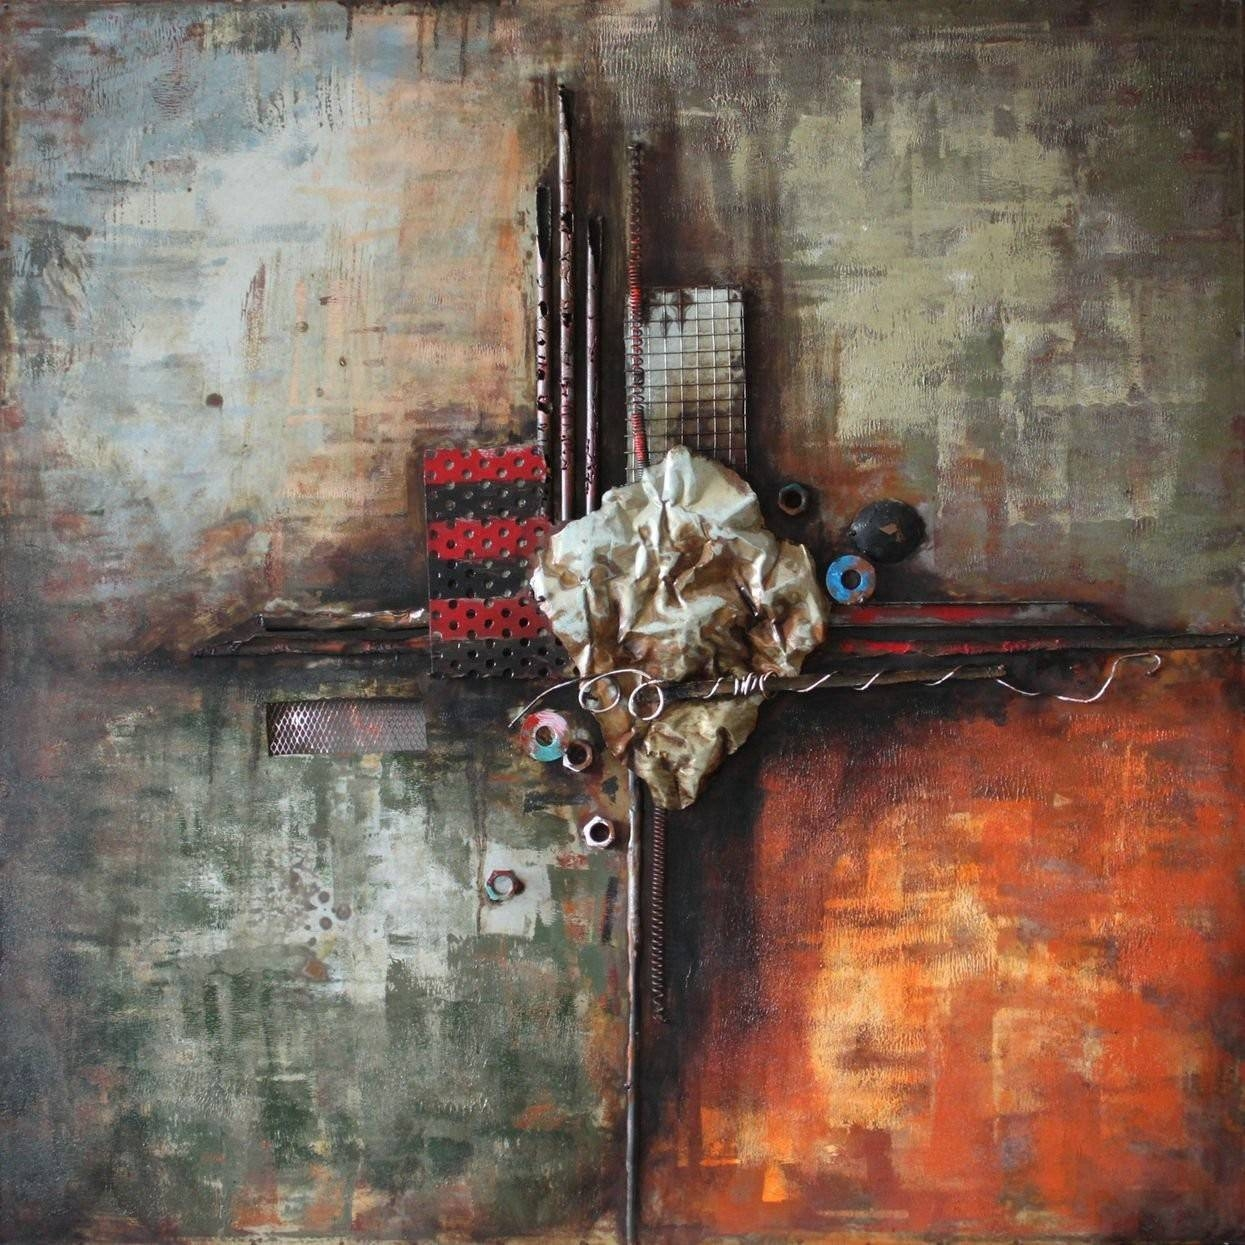 Abstract 4 3D Metal Wall Art Hand Painted – Metal Wall Art Regarding Latest Painted Metal Wall Art (View 1 of 20)